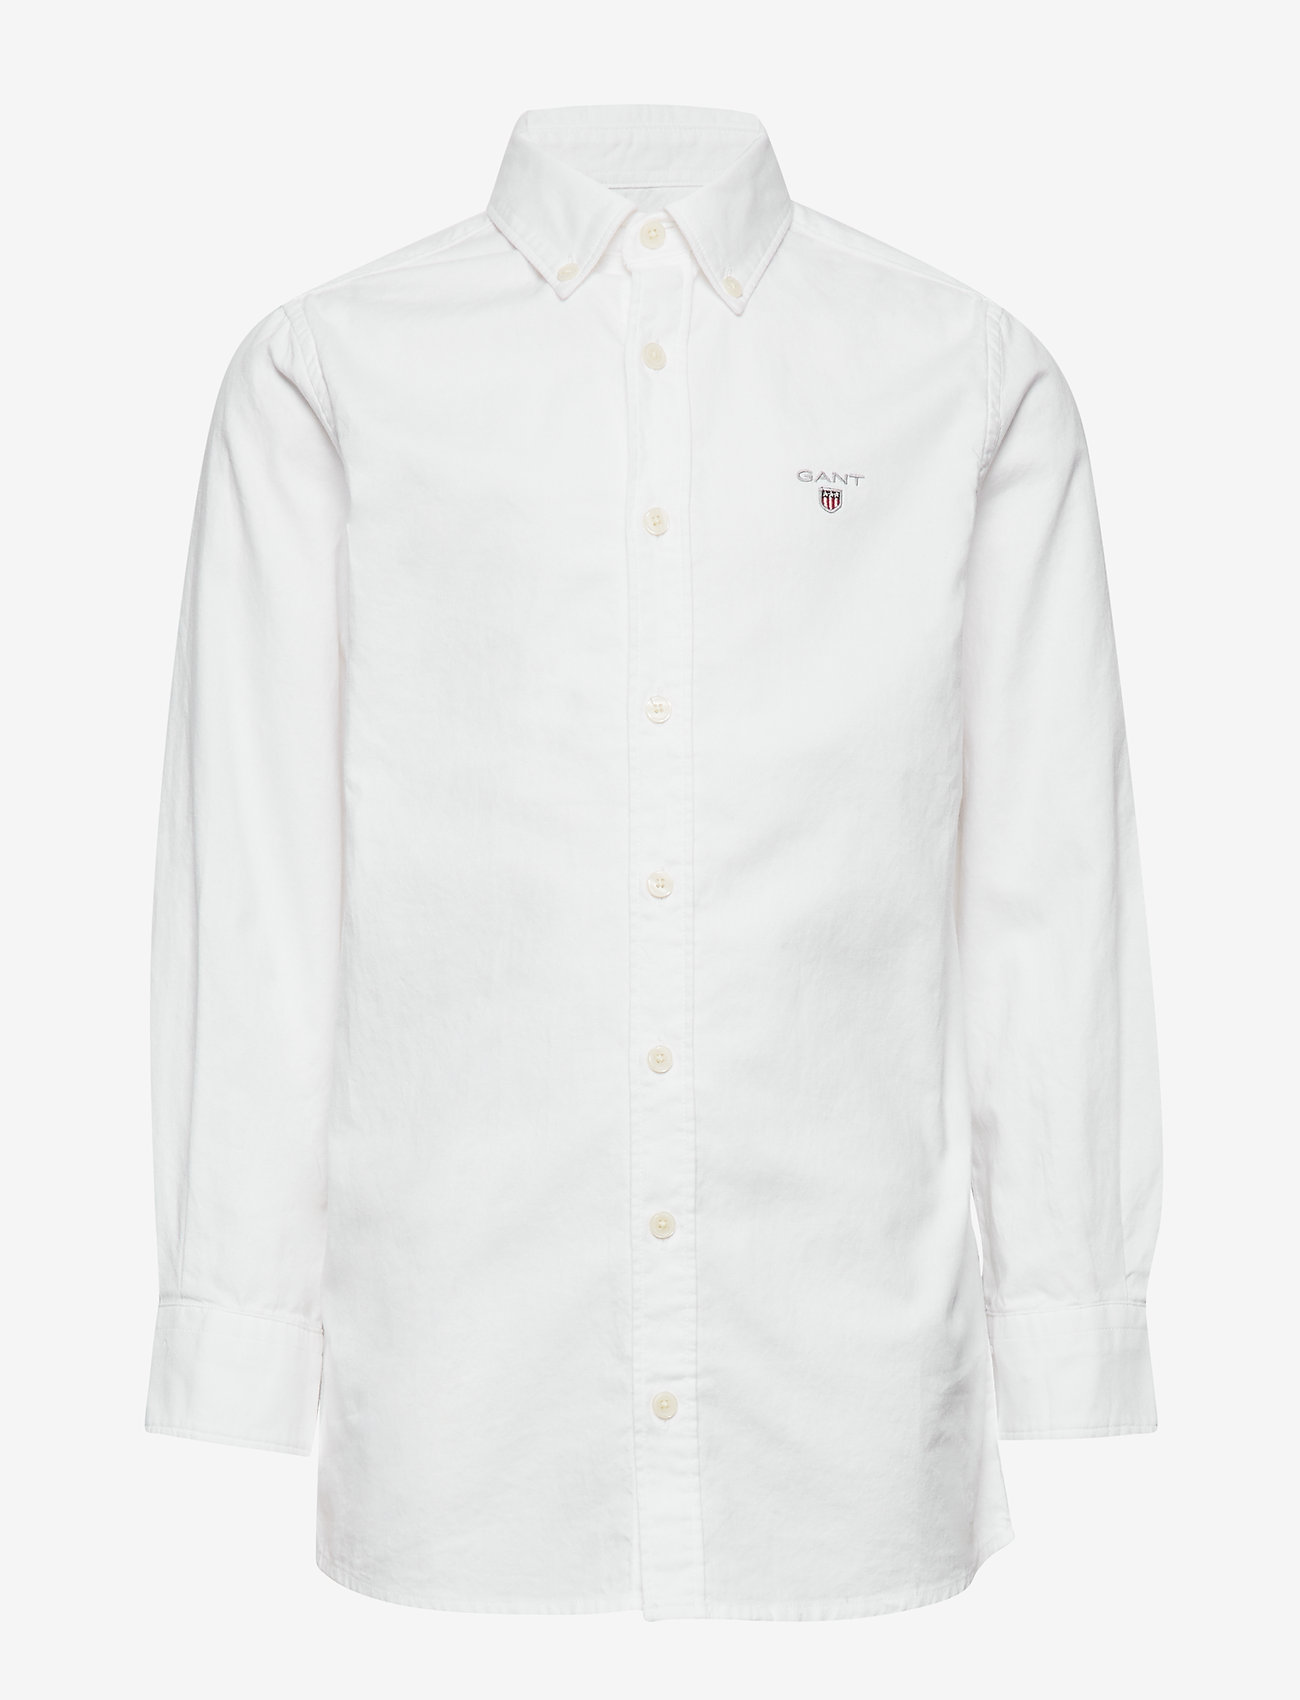 GANT - ARCHIVE OXFORD B.D SHIRT - overhemden - white - 0